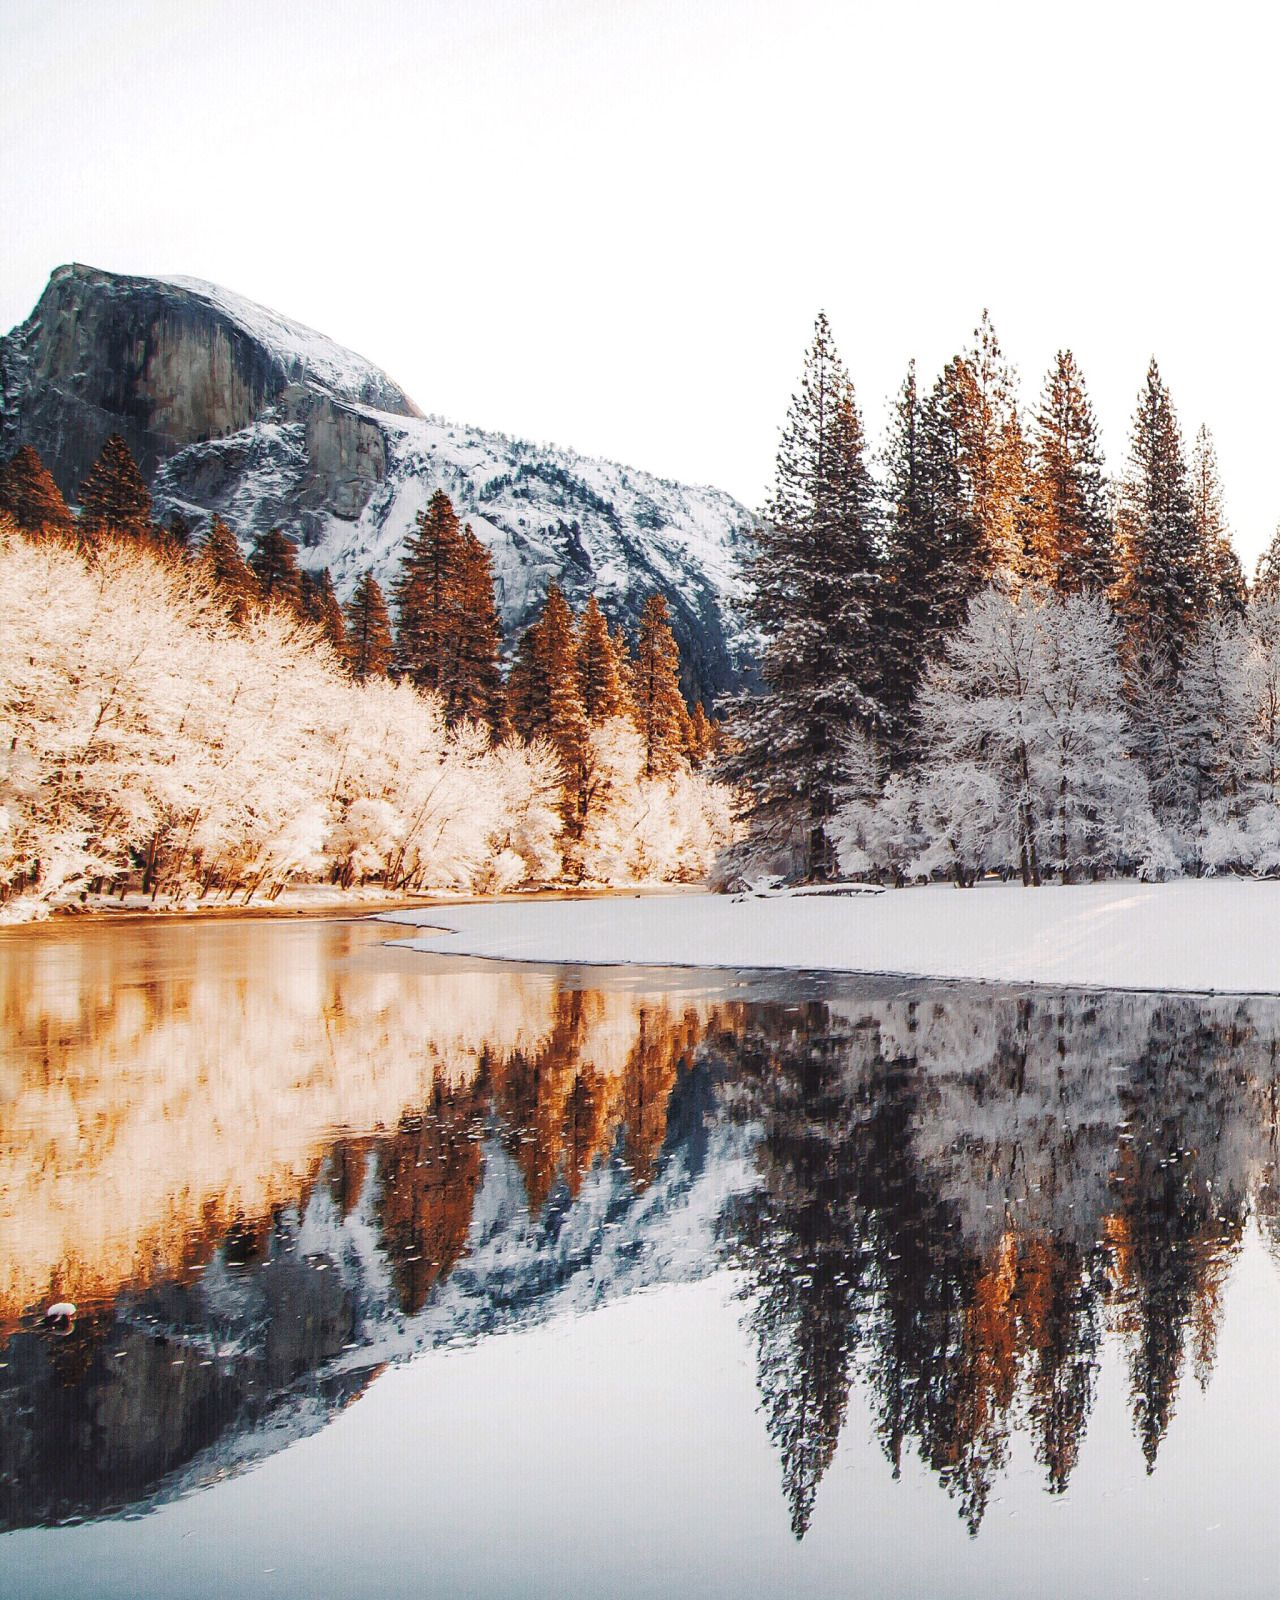 Places To Visit In Month Of December: Yosemite In December @zeisenhauer